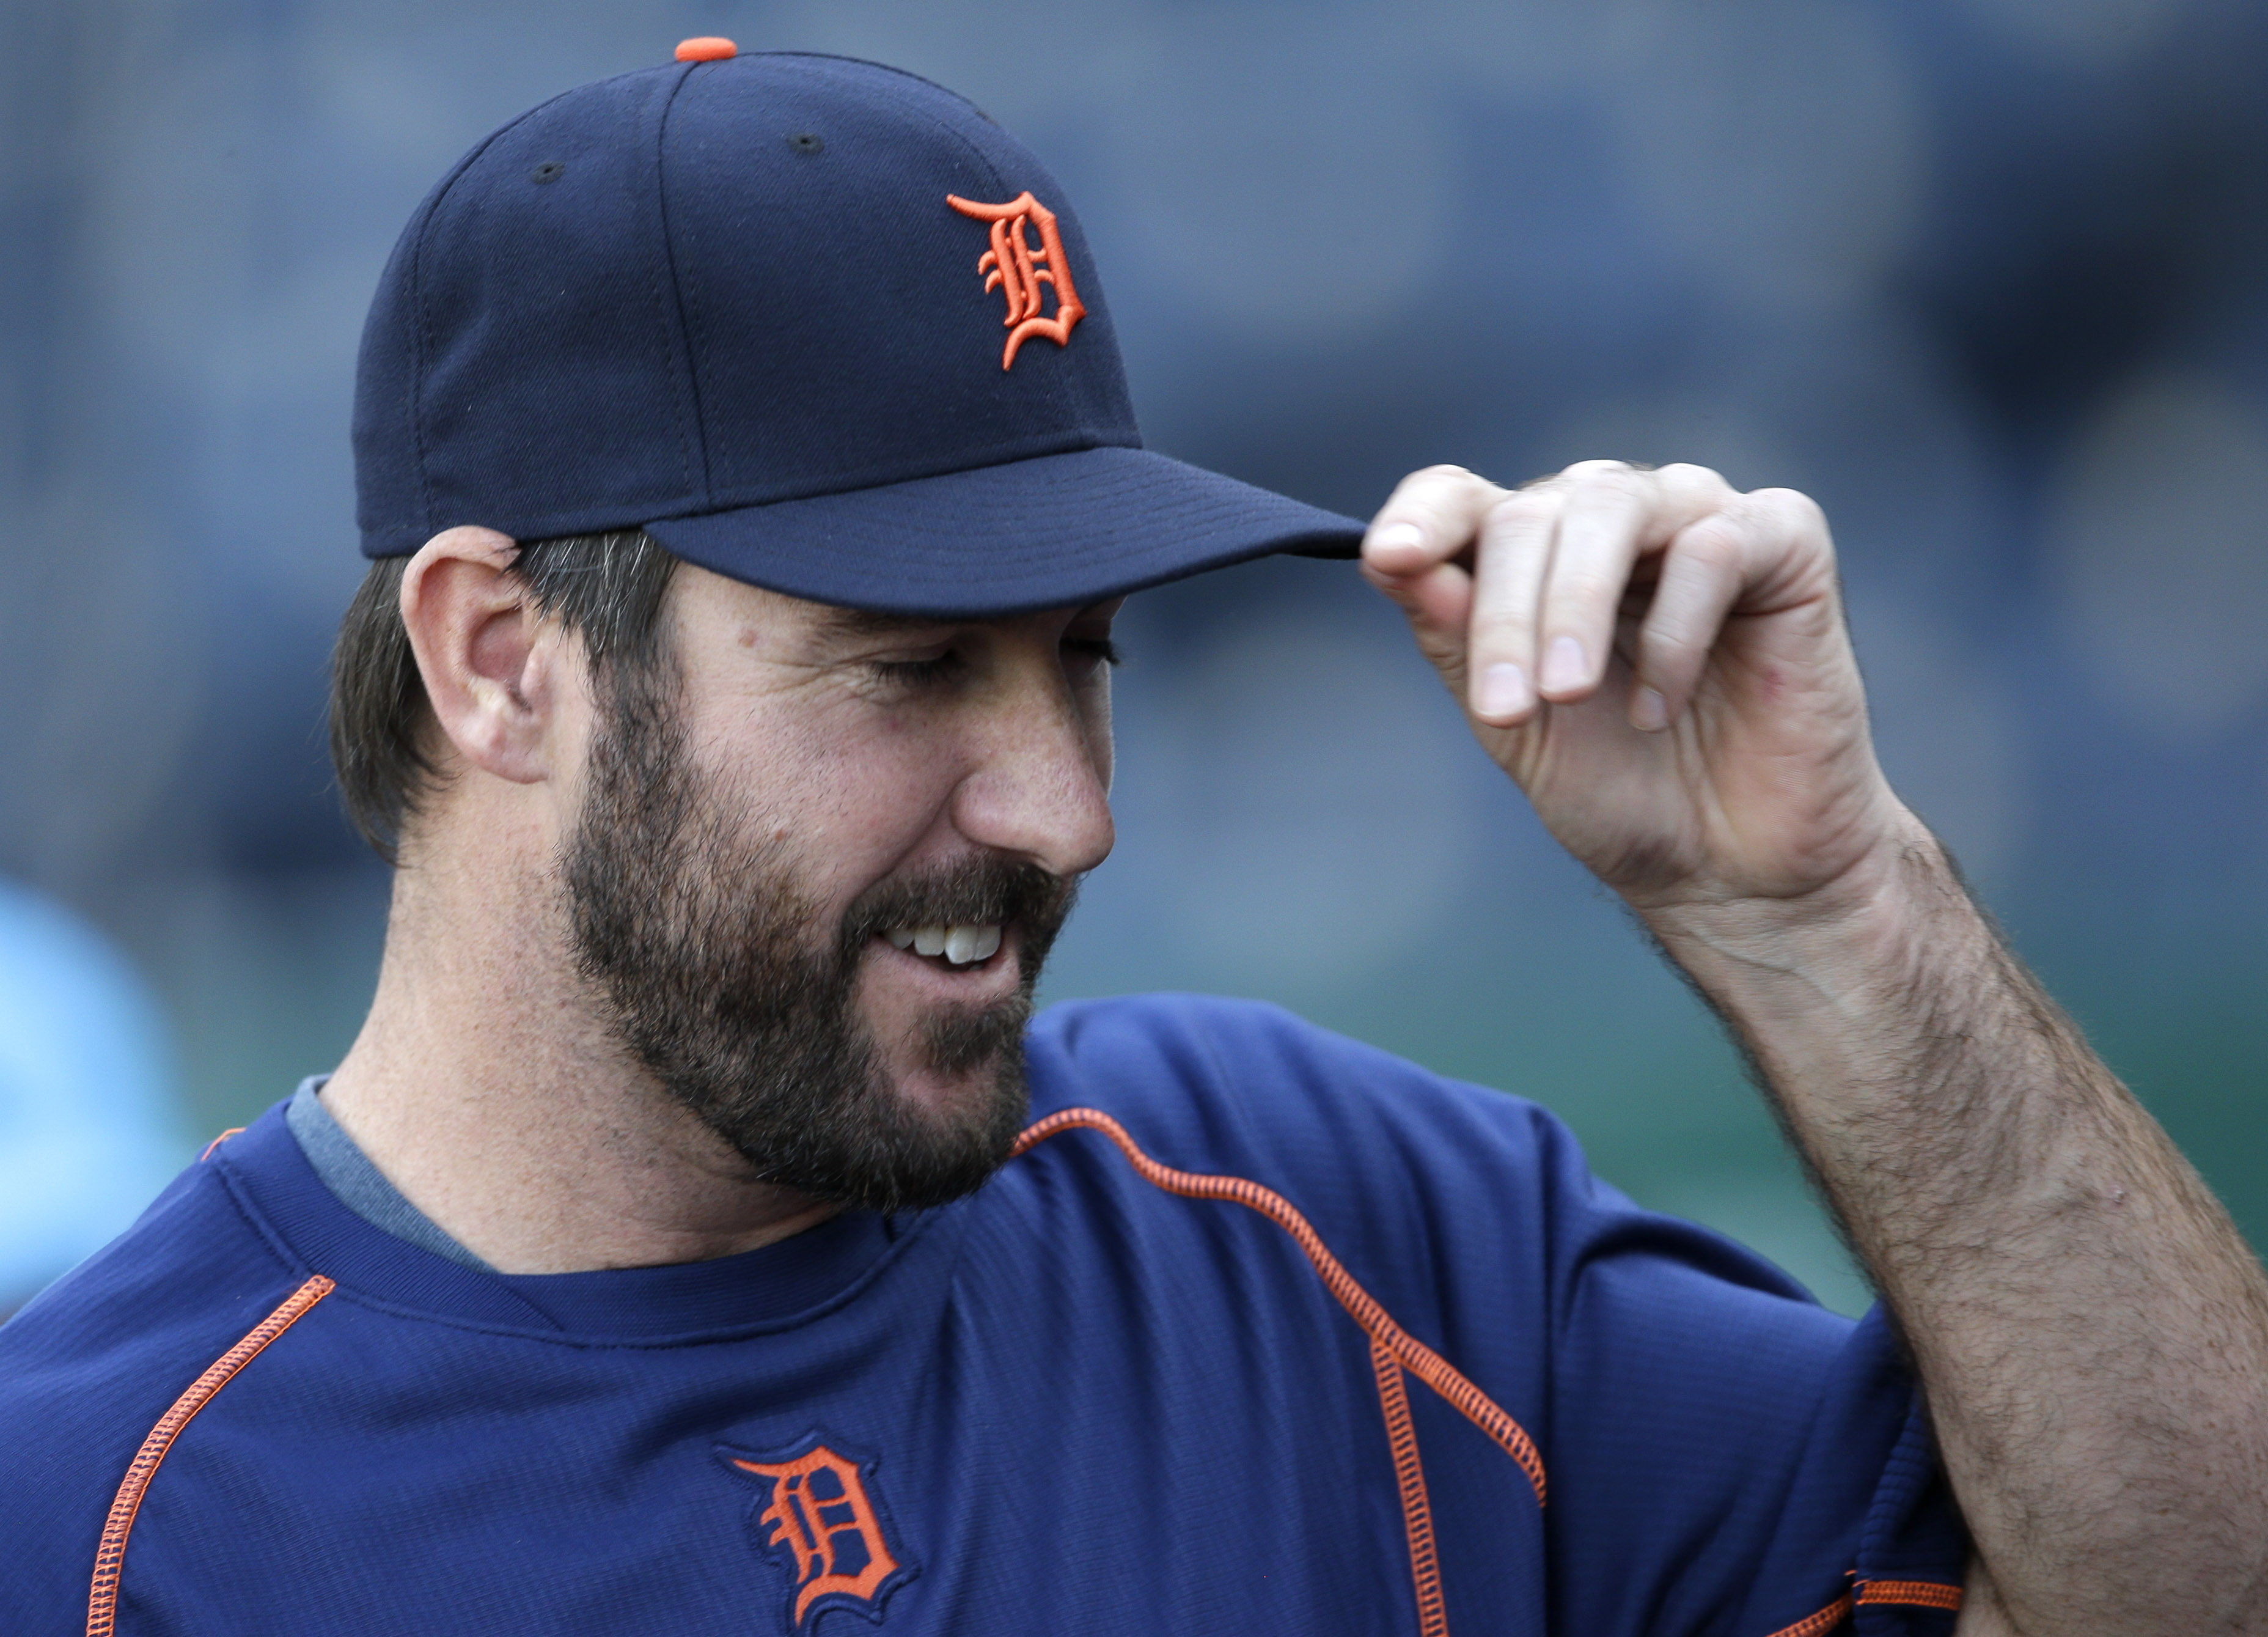 Detroit pitcher Justin Verlander cleared to resume throwing